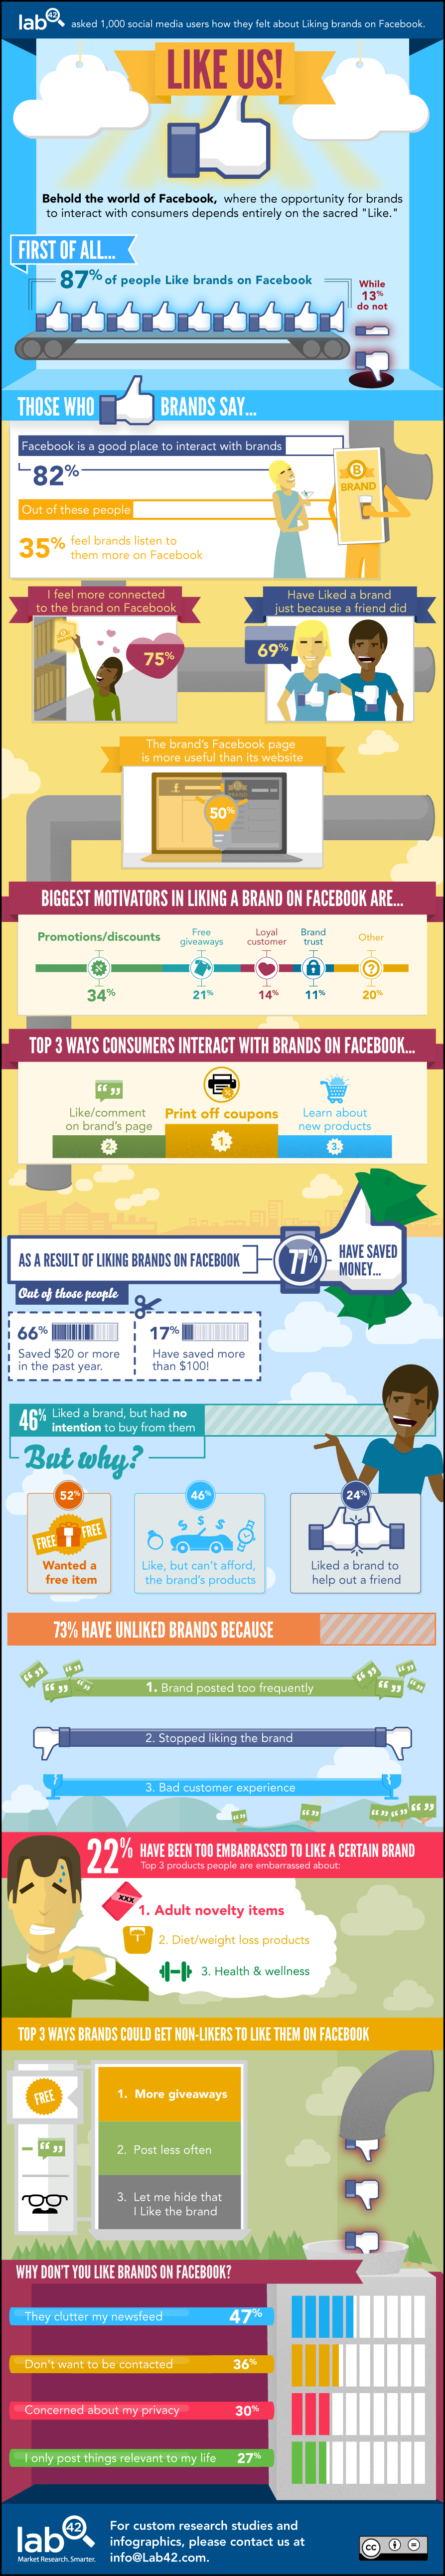 facebook brand likes infographic 1 out of 2 Consumers Think Brand Facebook Pages Are More Useful Than Websites